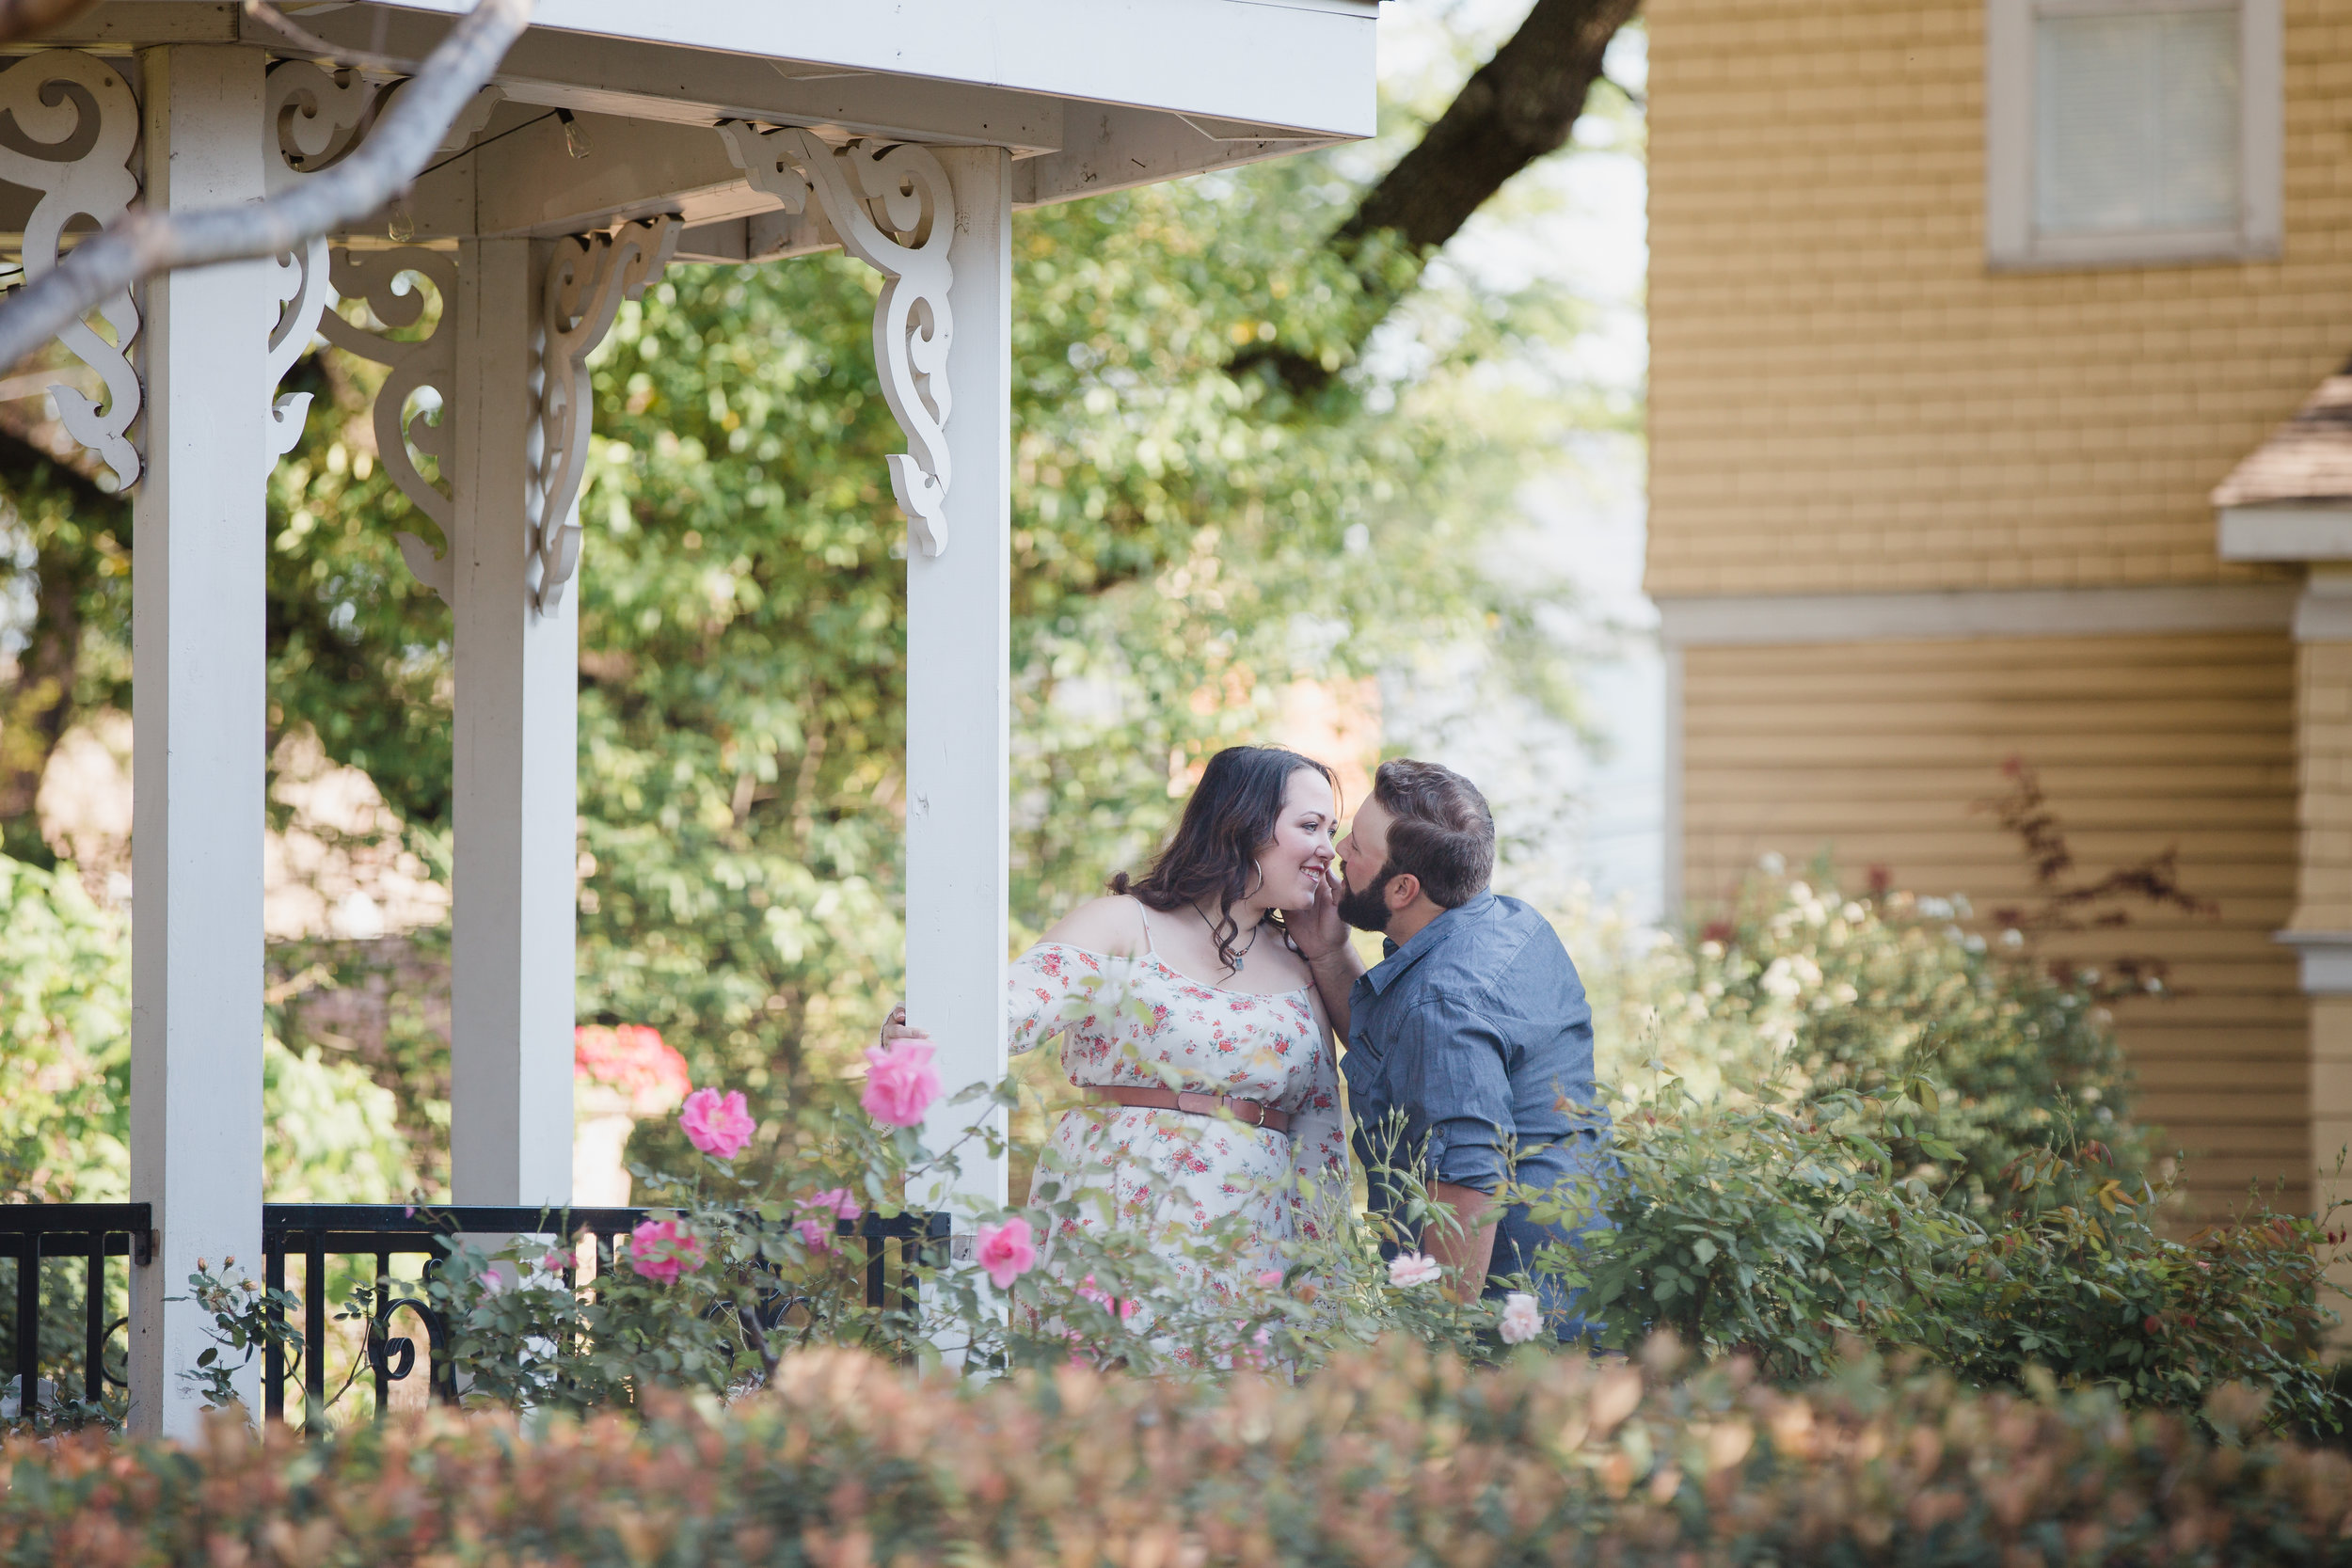 downtown mckinney texas, stealing kisses in the garden, a forever kind of love